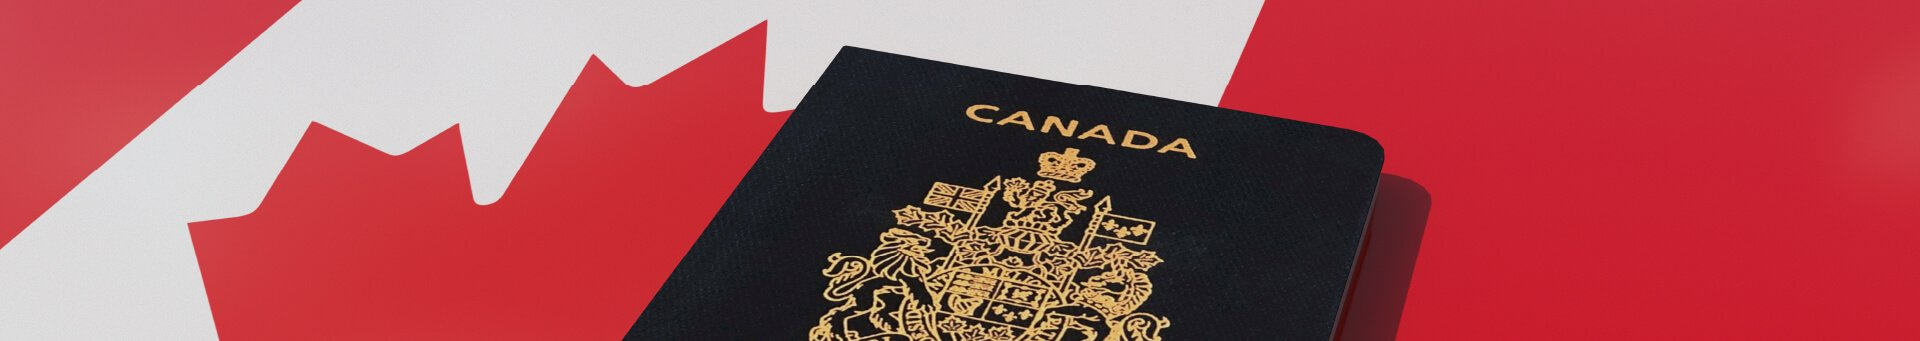 Familiarize yourself with the requirements for becoming a Canadian citizen.